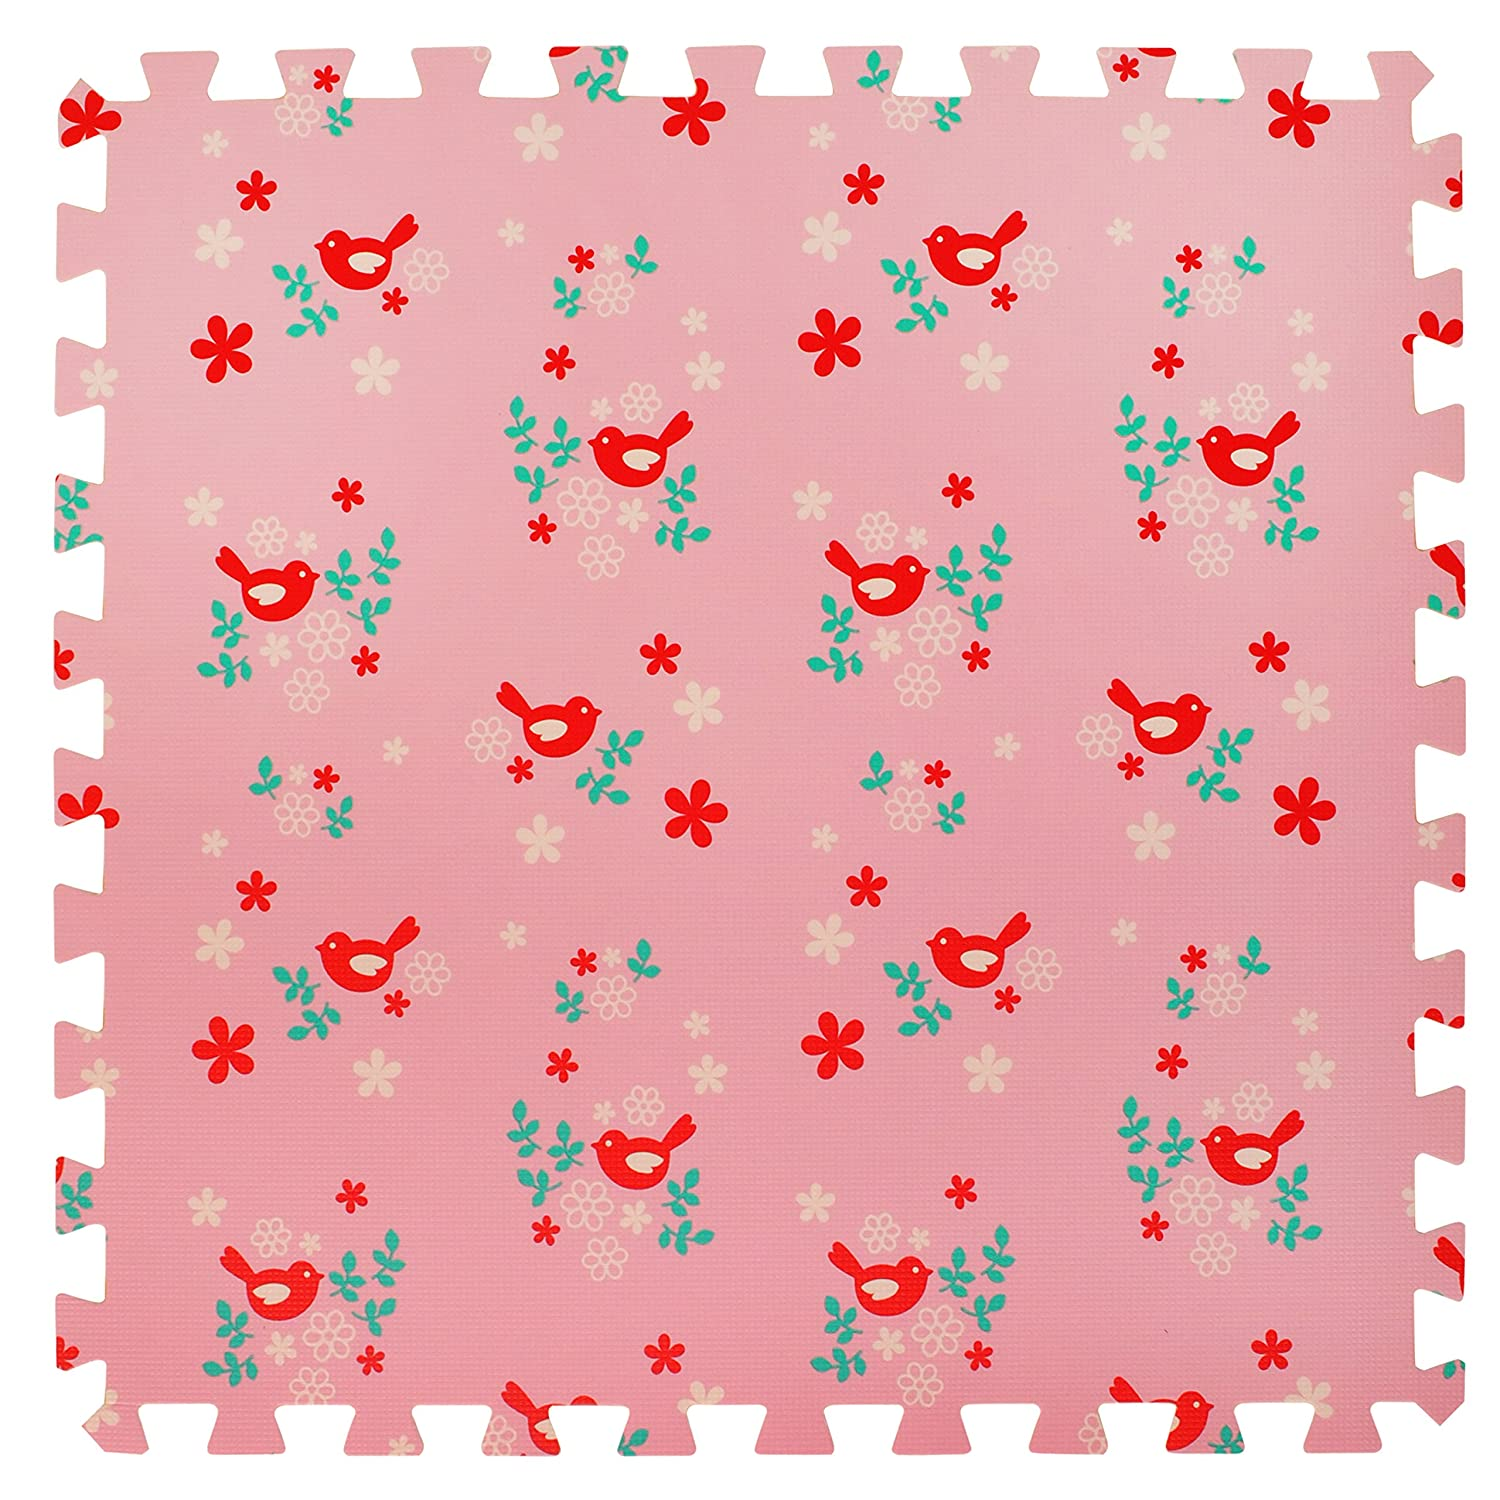 4 Large Children's Pink Foam Play Mats with Edges – 4 Large Soft Interlocking Floor Mats with Bird Pattern for Children. Each tile is 60 x 60cms = 1.2m2 For the Love of Leisure